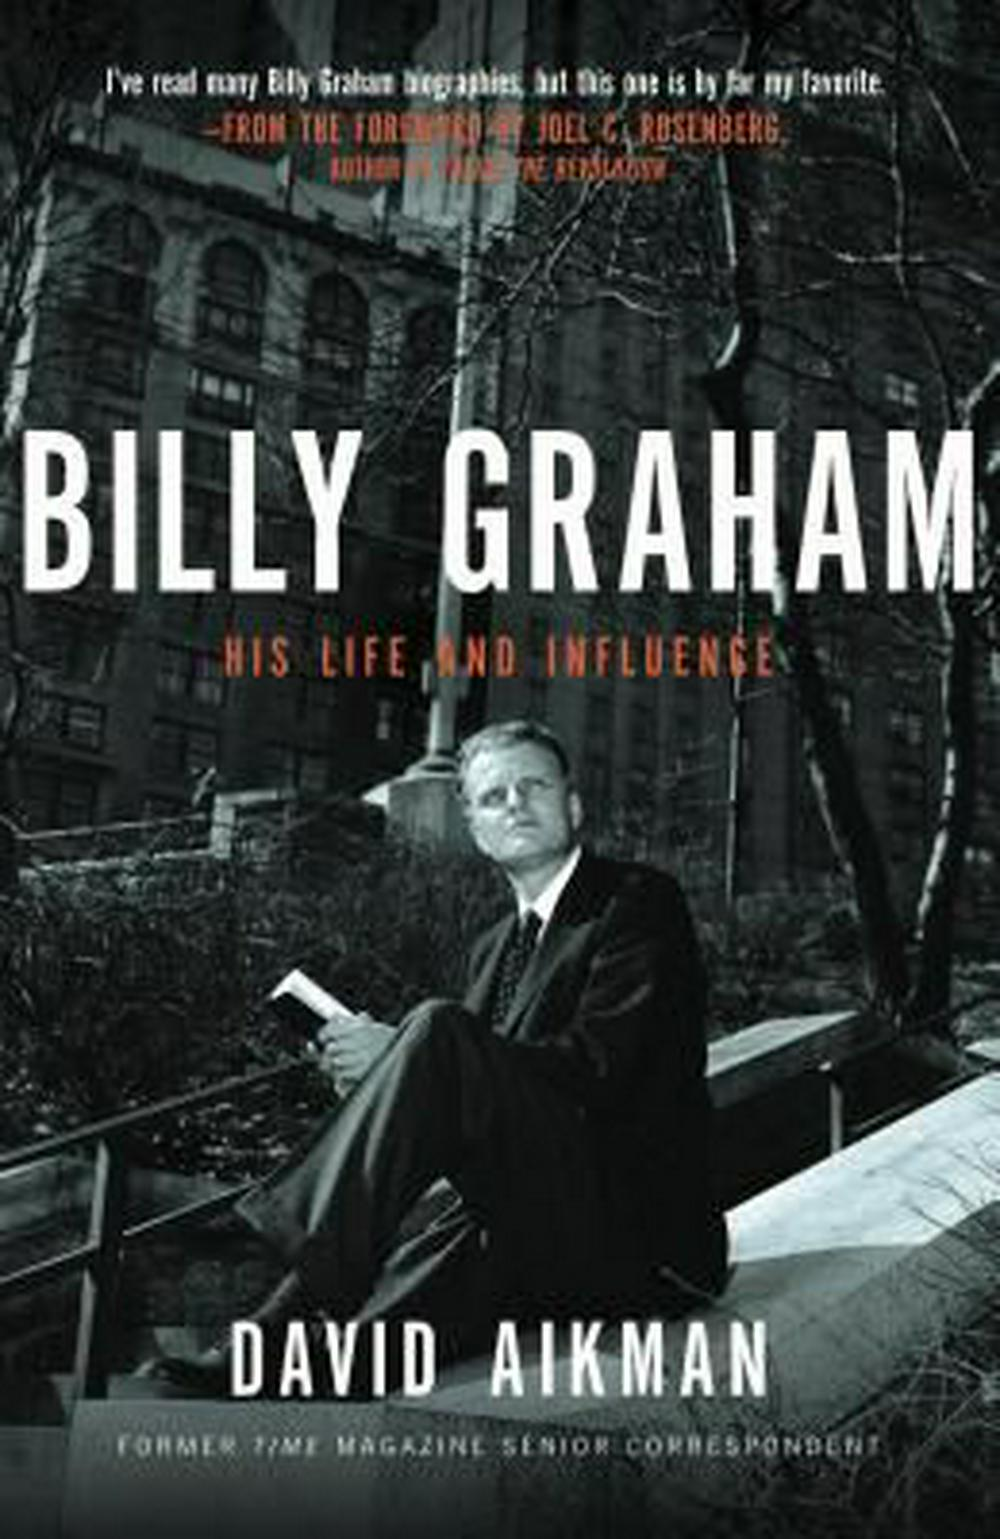 Billy Graham: His Life and Influence by David Aikman, ISBN: 9781595551047